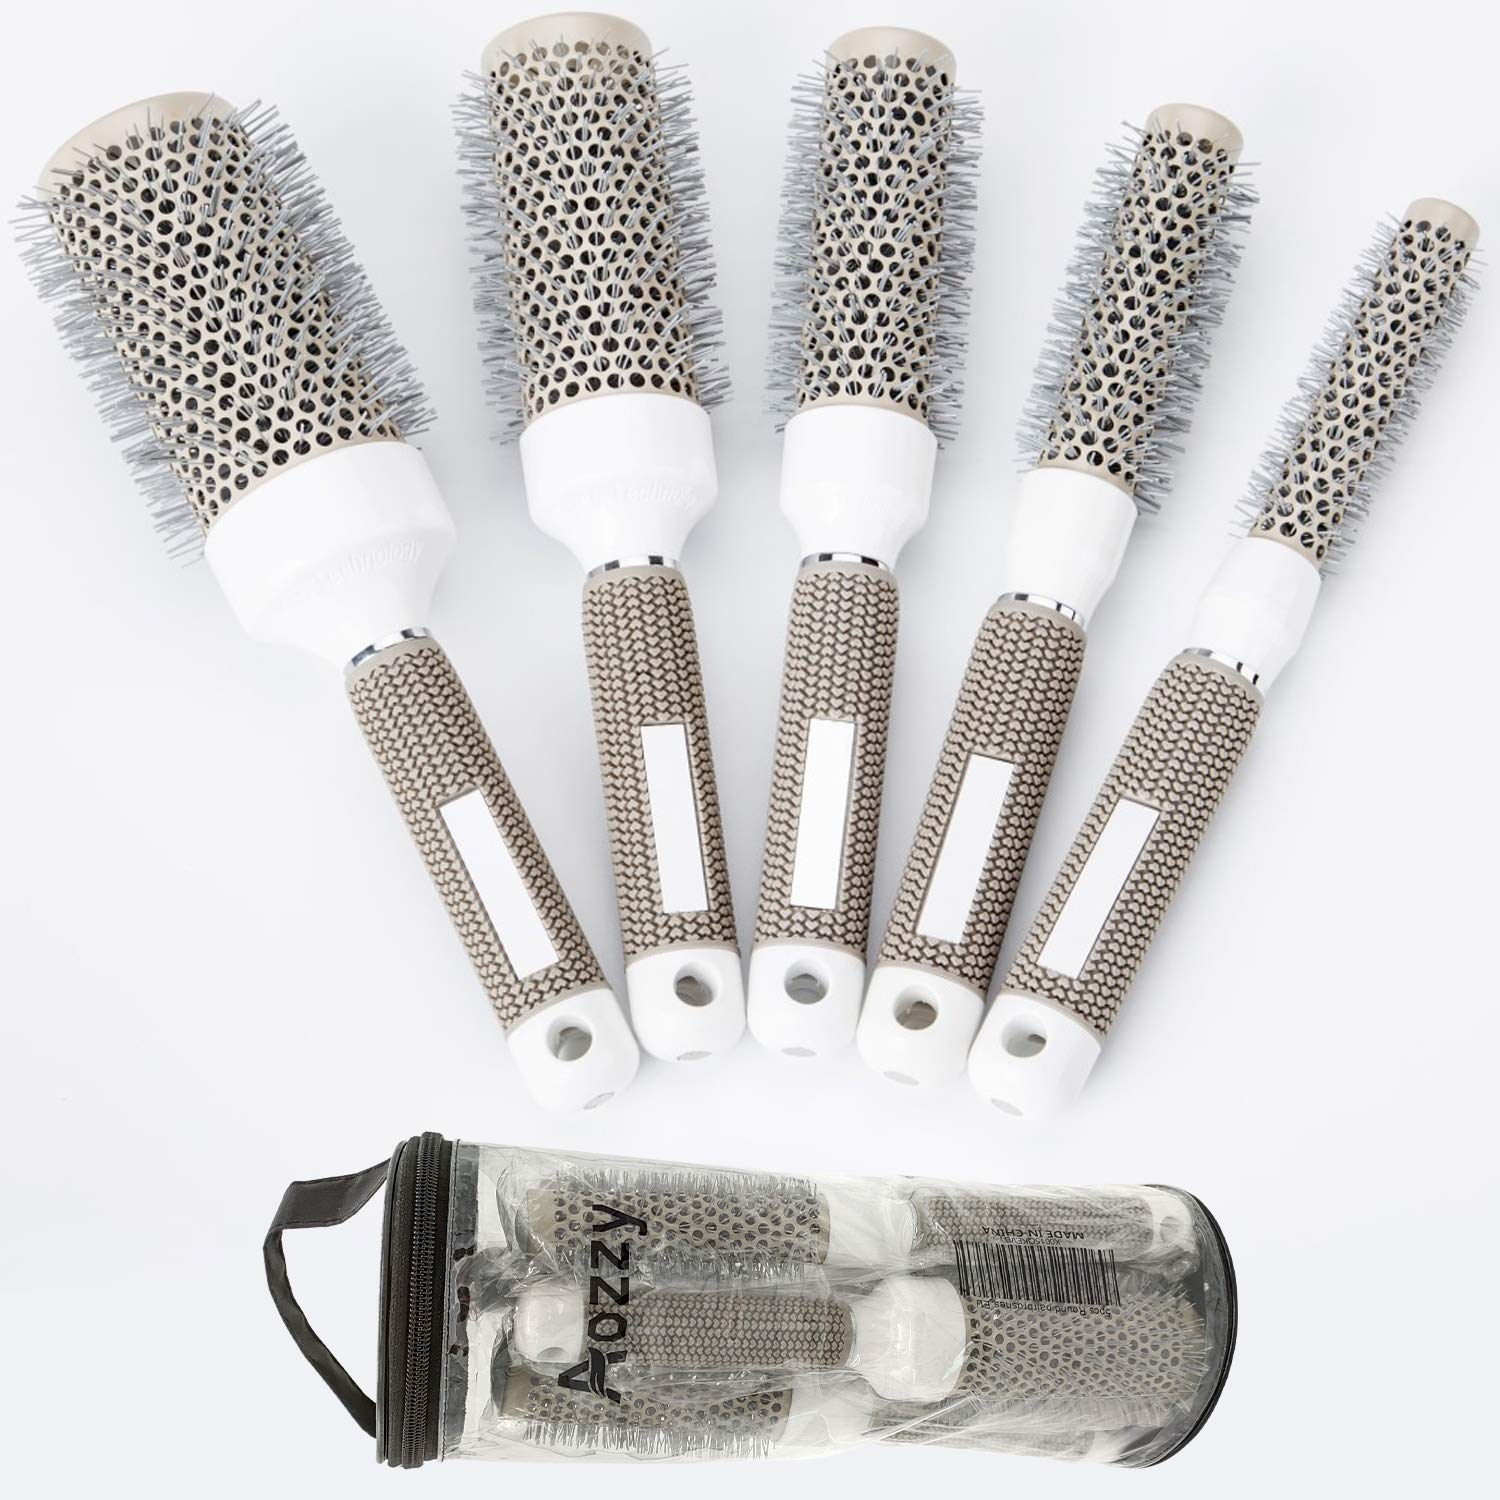 Round Brush Set for Blow Drying Curling, Professional Ceramic Ion Thermal Barrel Brush Leaves Hair Shiny Heat Styling Brush 5 Different Sizes Works Very Well with The Blow Dryer …